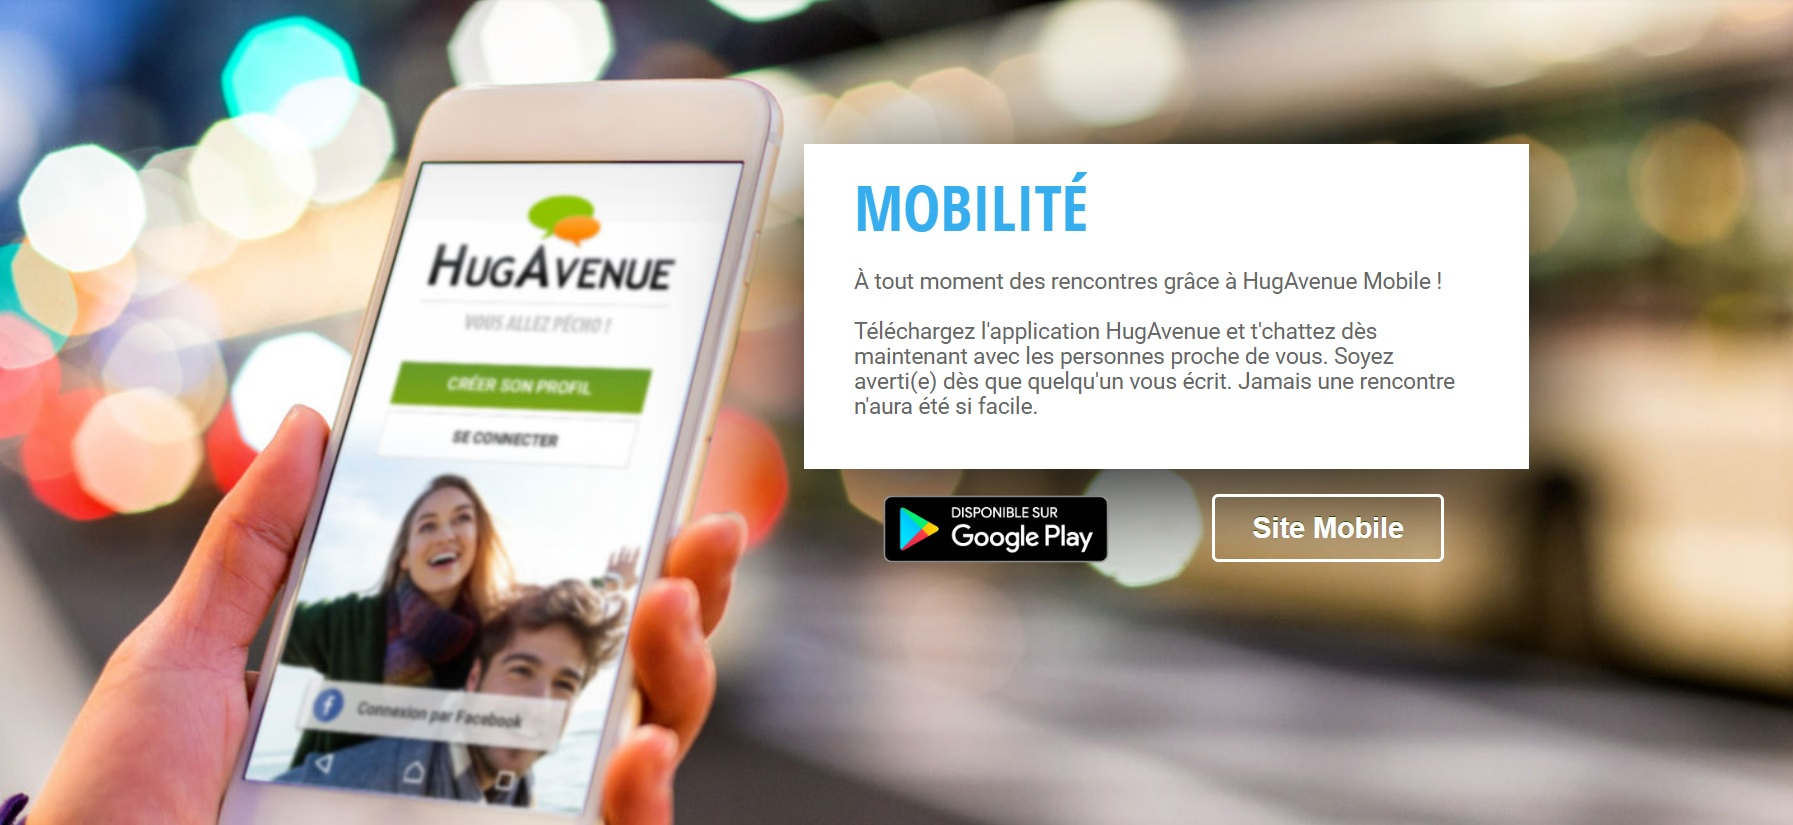 Application HugAvenue